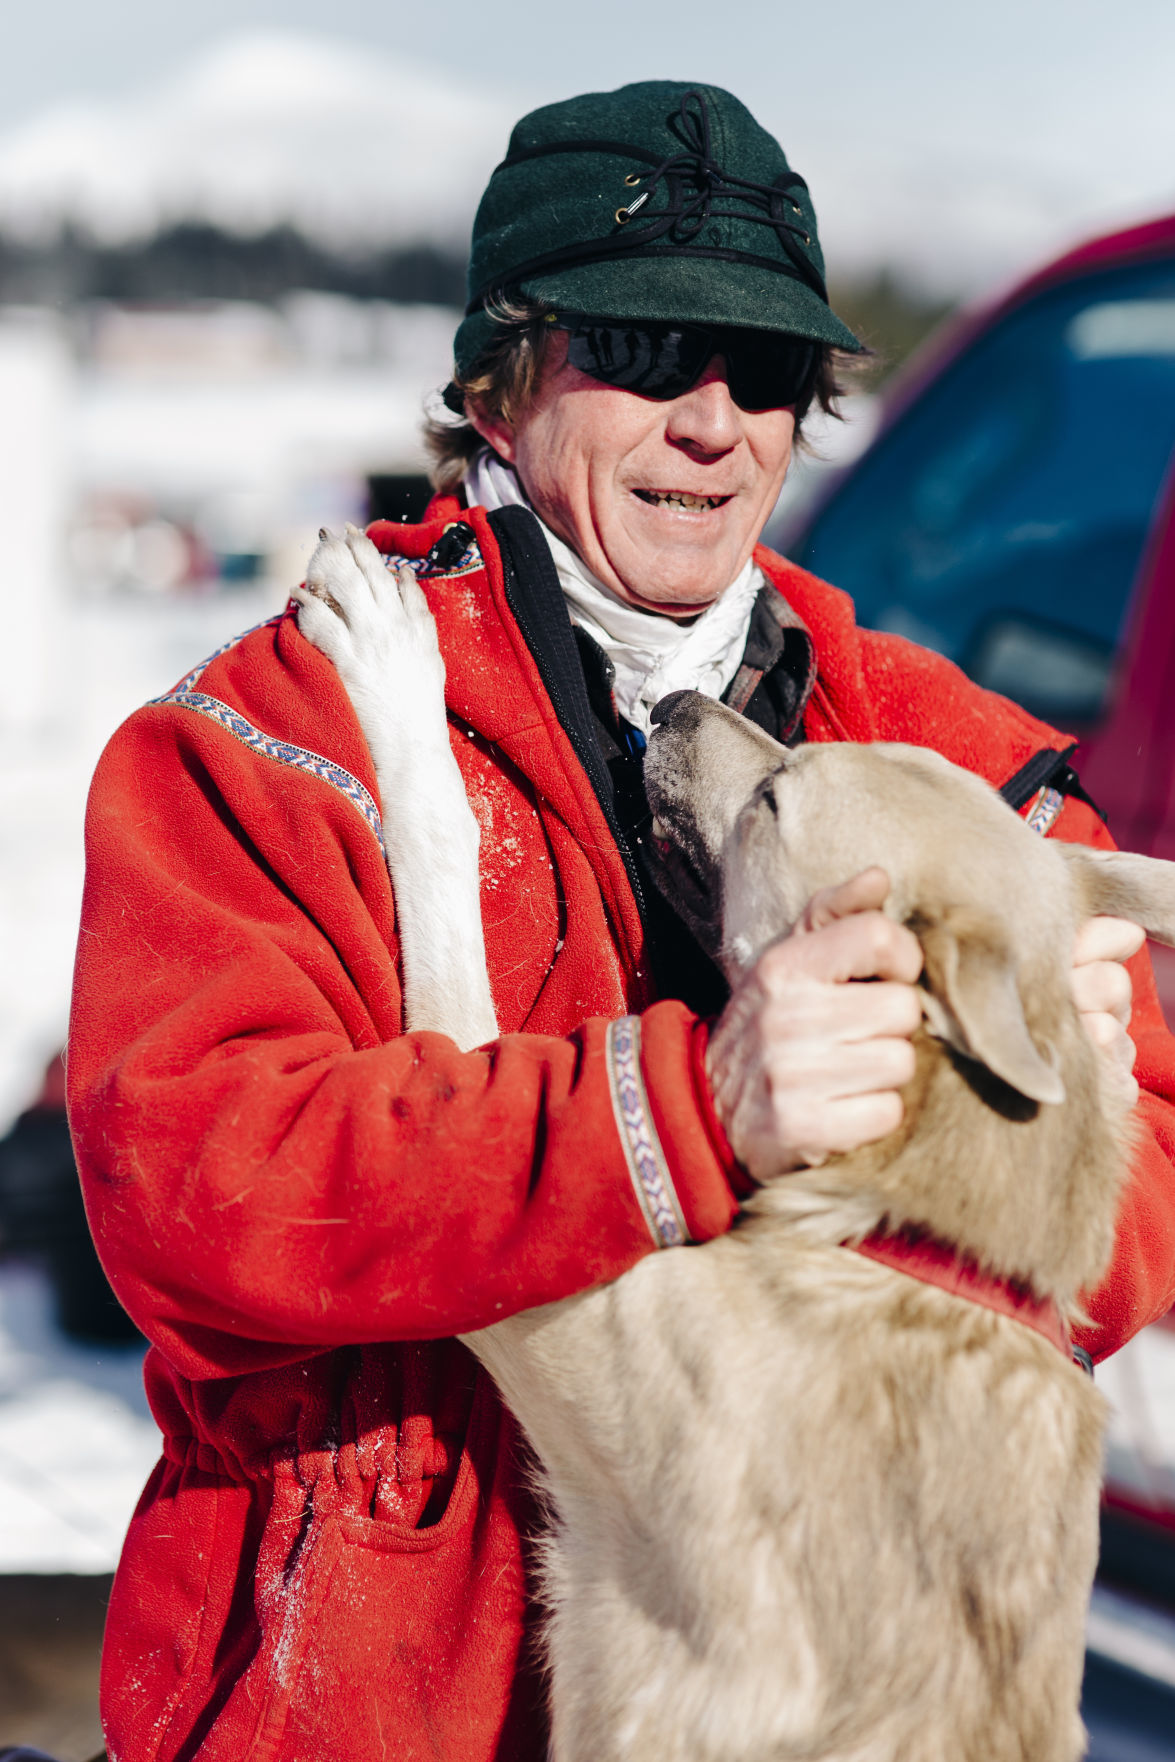 Musher Clayton Perry, 57, from Power, MT